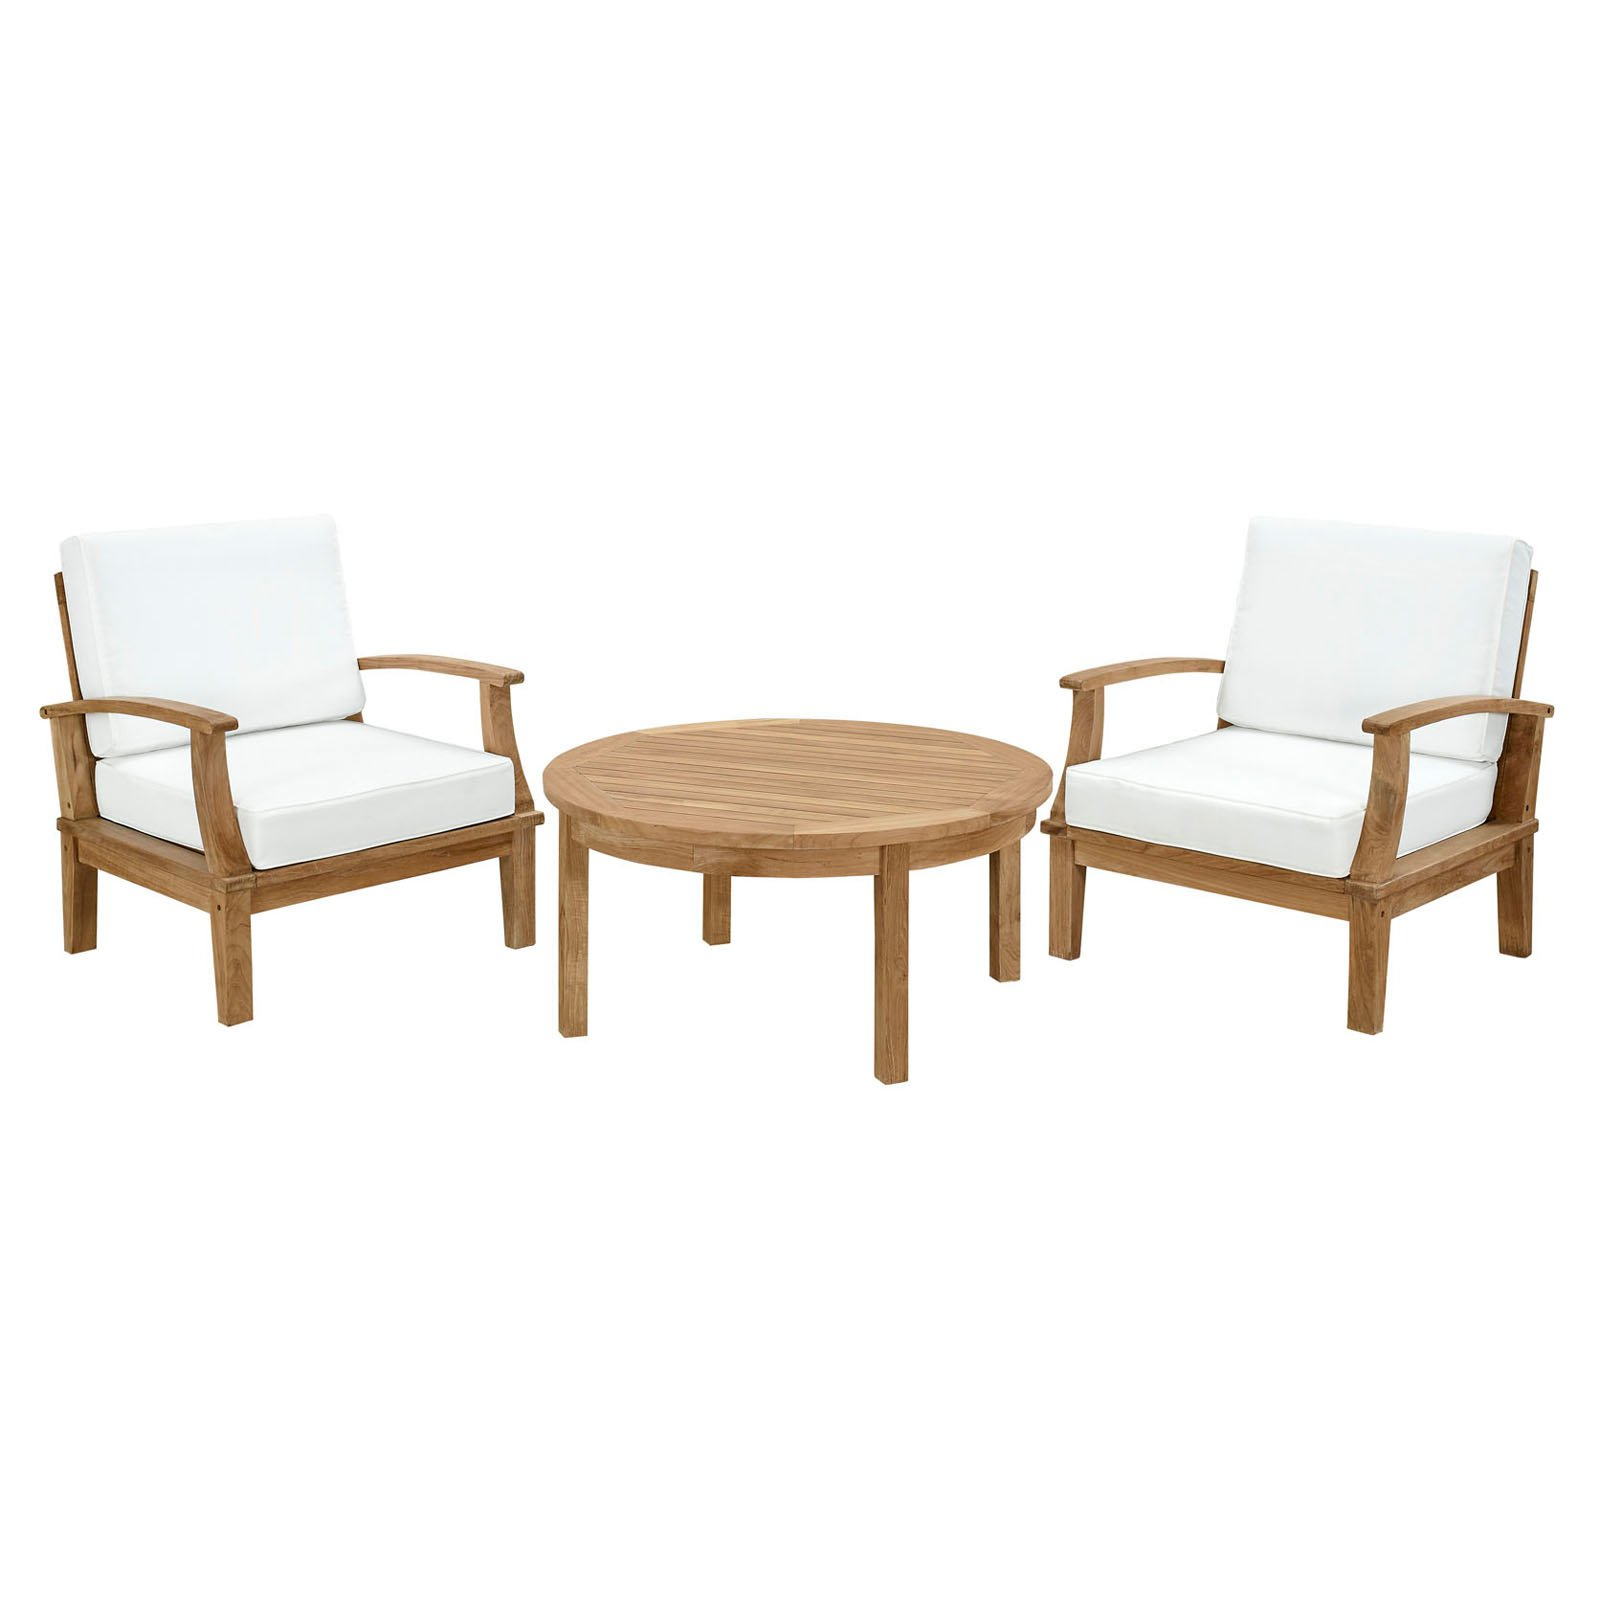 Modway Marina 3 Piece Outdoor Patio Teak Sofa Set in Natural White